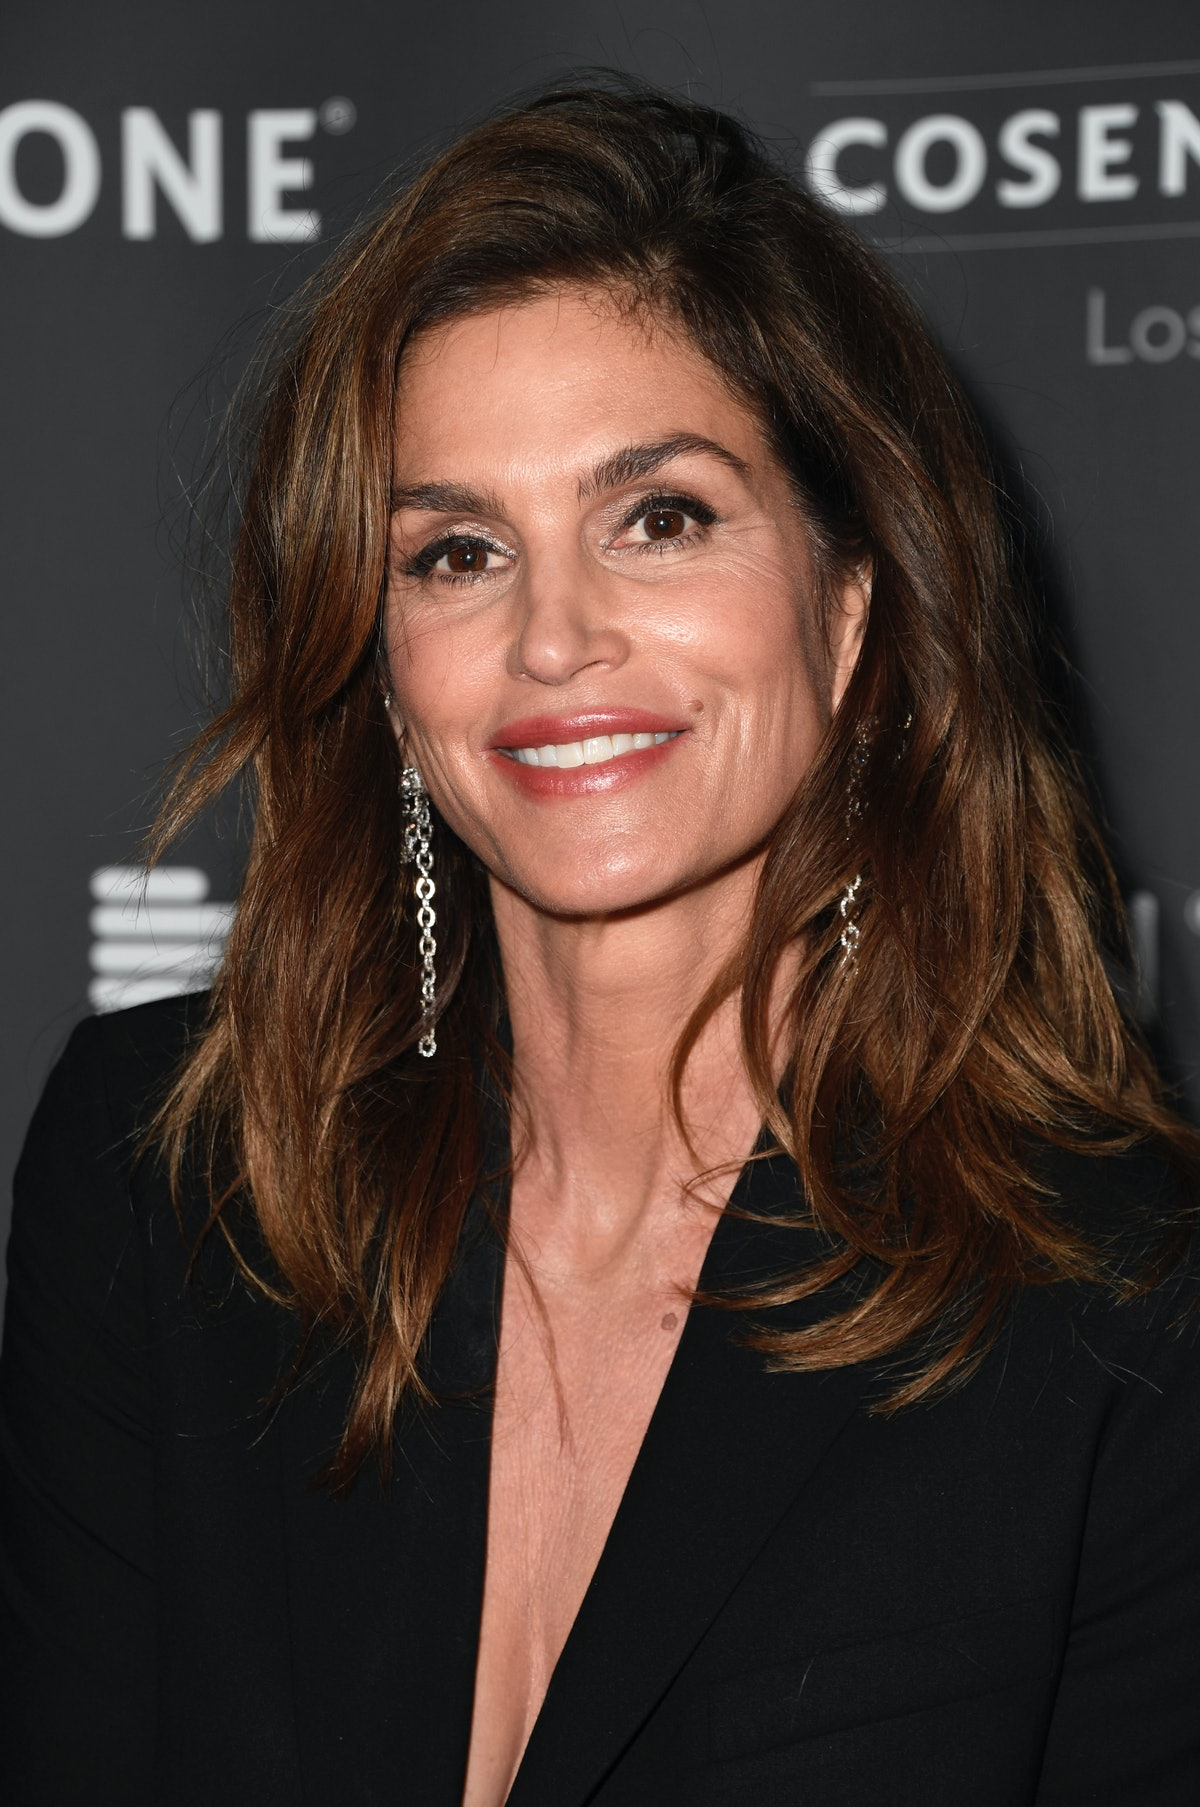 Cindy Crawford's style essentials are items you probably already own.